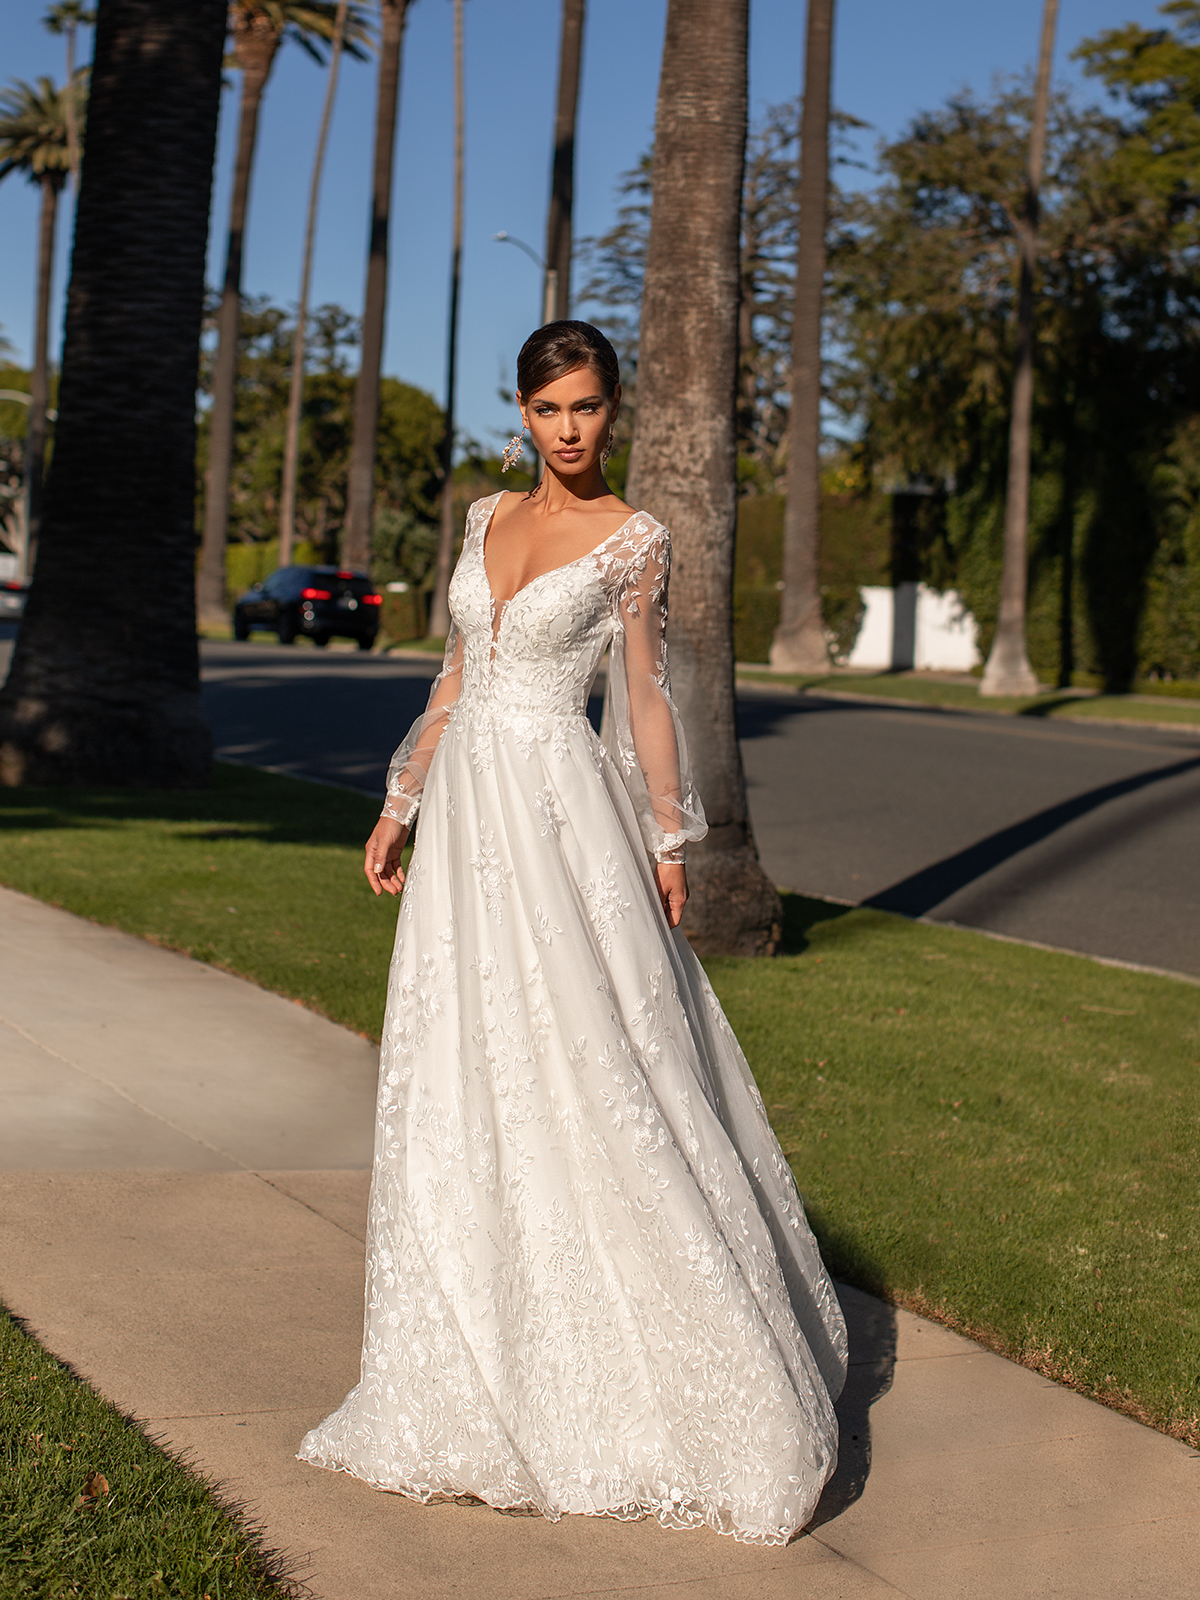 Lace Wedding Dresses in Every Silhouette – Moonlight Bridal – Val Stefani – S2161_A